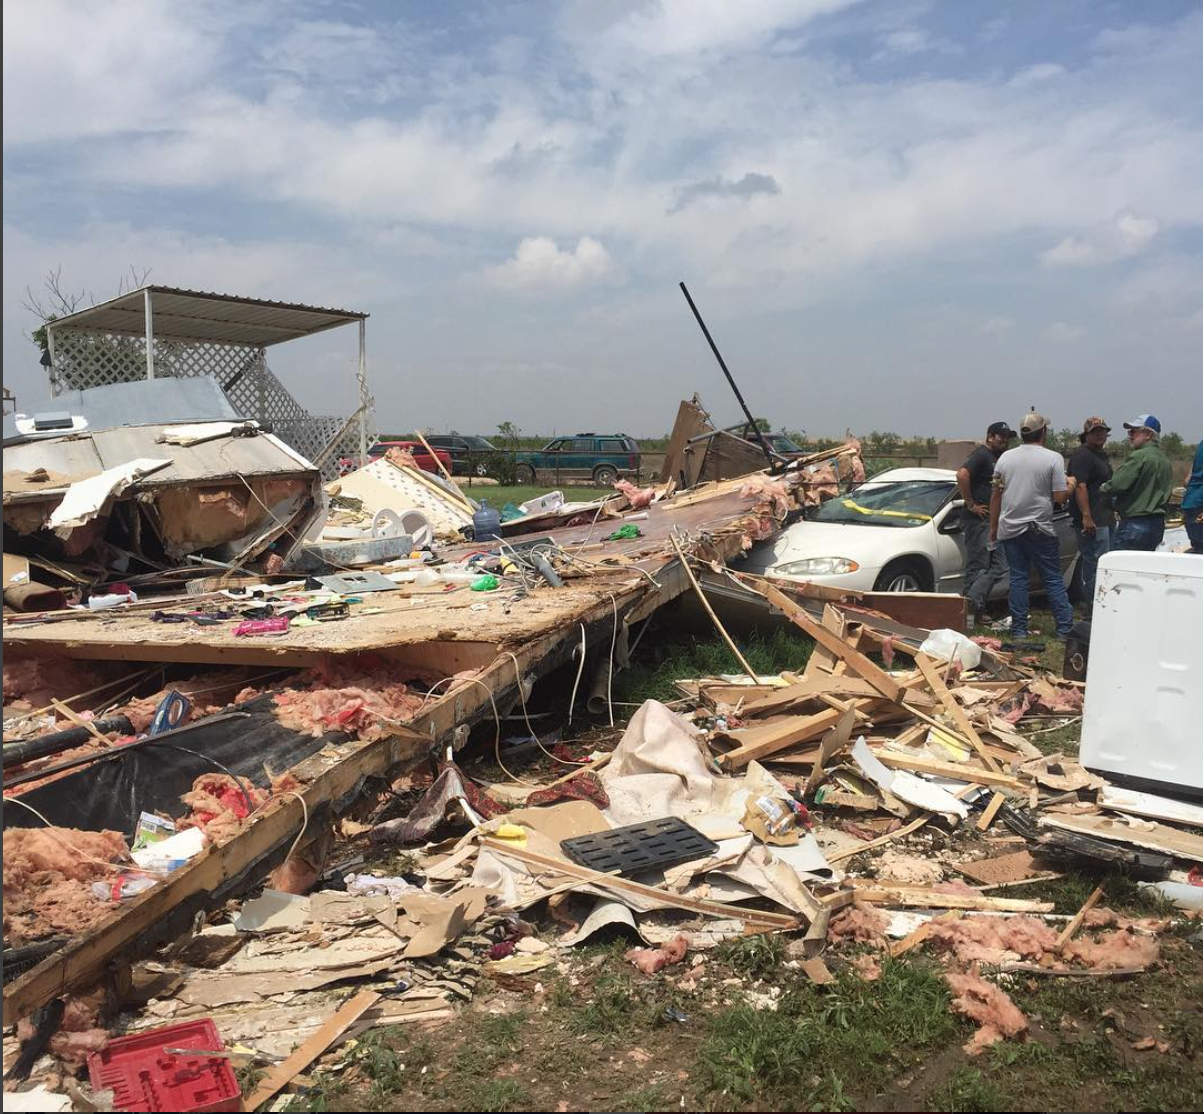 """Garden City, TX. The wreckage of Delia Pierson's mobile home after an EF4 tornado blew through Howard and Glasscock Counties on Sunday night. """"My mom lost everything I guess,"""" said Justin Pierson, Delia's son. """"This is her whole house with everything in it. But we found the important stuff, the family photos and everything like that. The rest, it's all stuff. It'll come back. Thank God nobody was hurt."""" Full story:  http://www.mrt.com/news/top_stories/article_f01b1d26-2157-11e6-a3b1-cbb13e4d2bf2.html   #gardencity  #glasscock  #howard  #bigspring  #texas  #tornado  #SnapshotLives"""